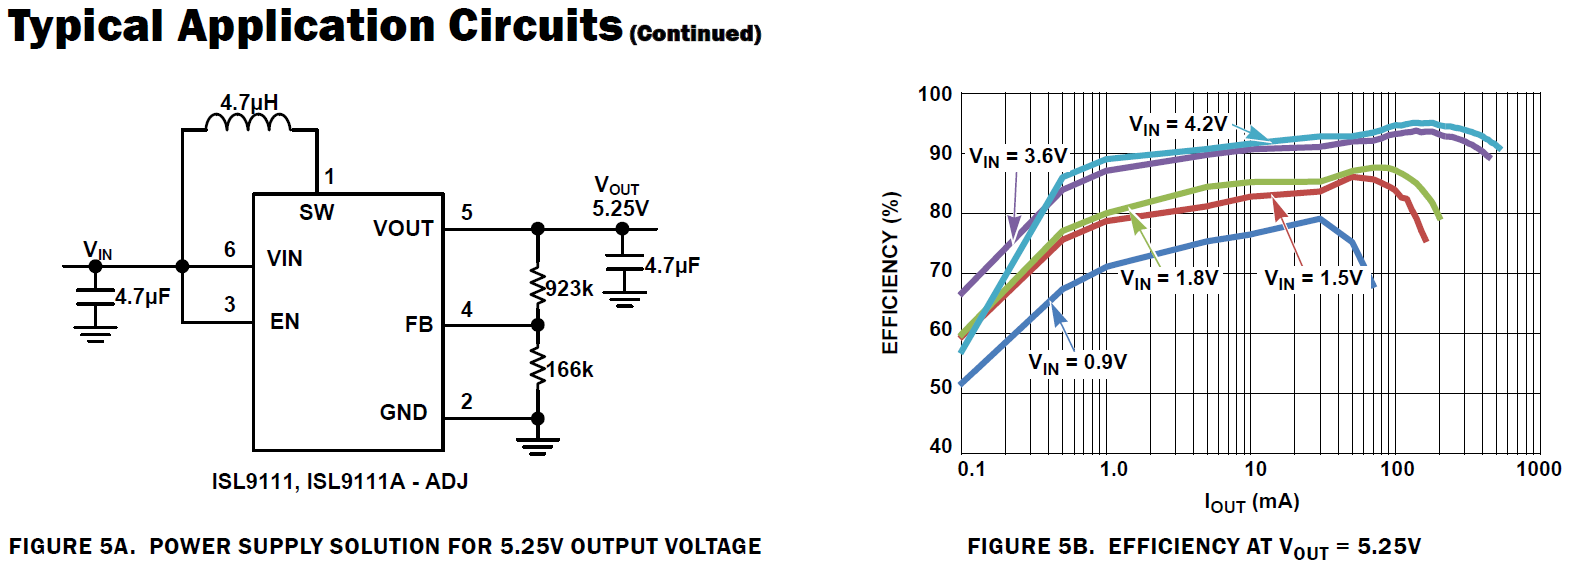 Lm2674 Vs Mc34063 Efficiency Cost Page 1 Switching Regulators Using Lm2575 And Lm2577 As You Can See From The Picture It Looks Like Just About Do 525v 200ma With 18v Input Seems 400ma 36v